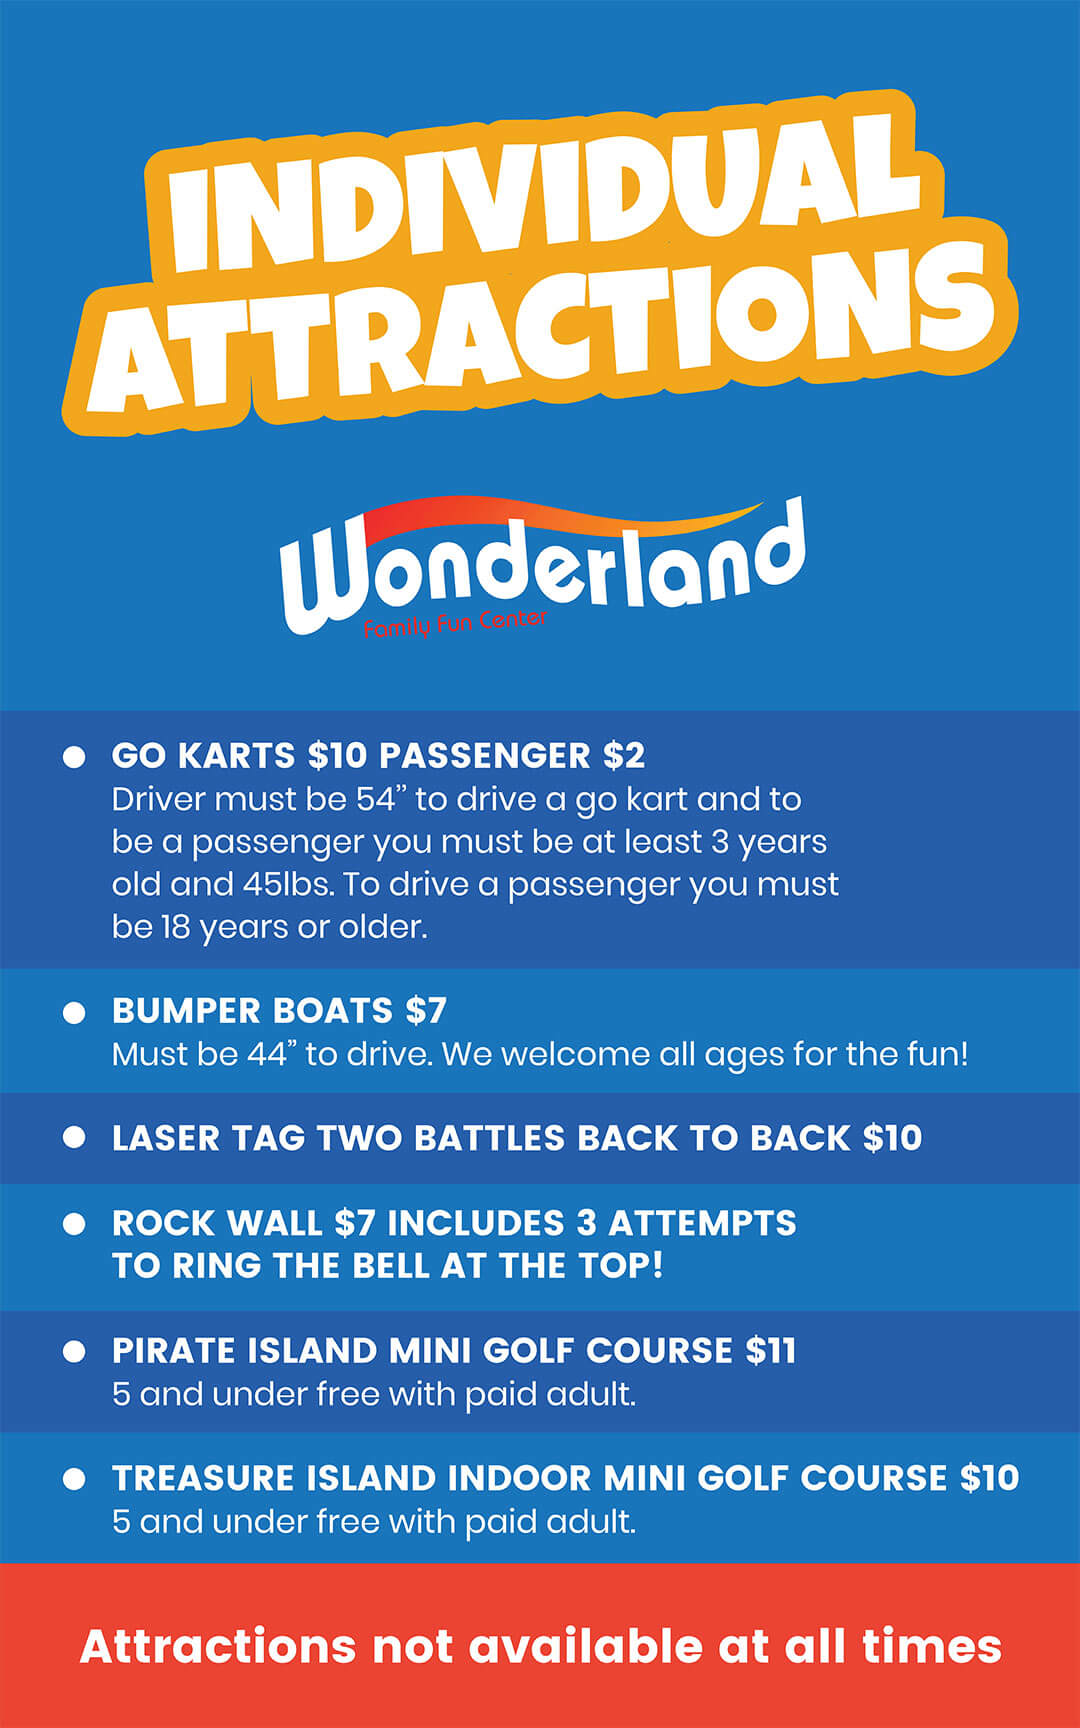 Individual attractions